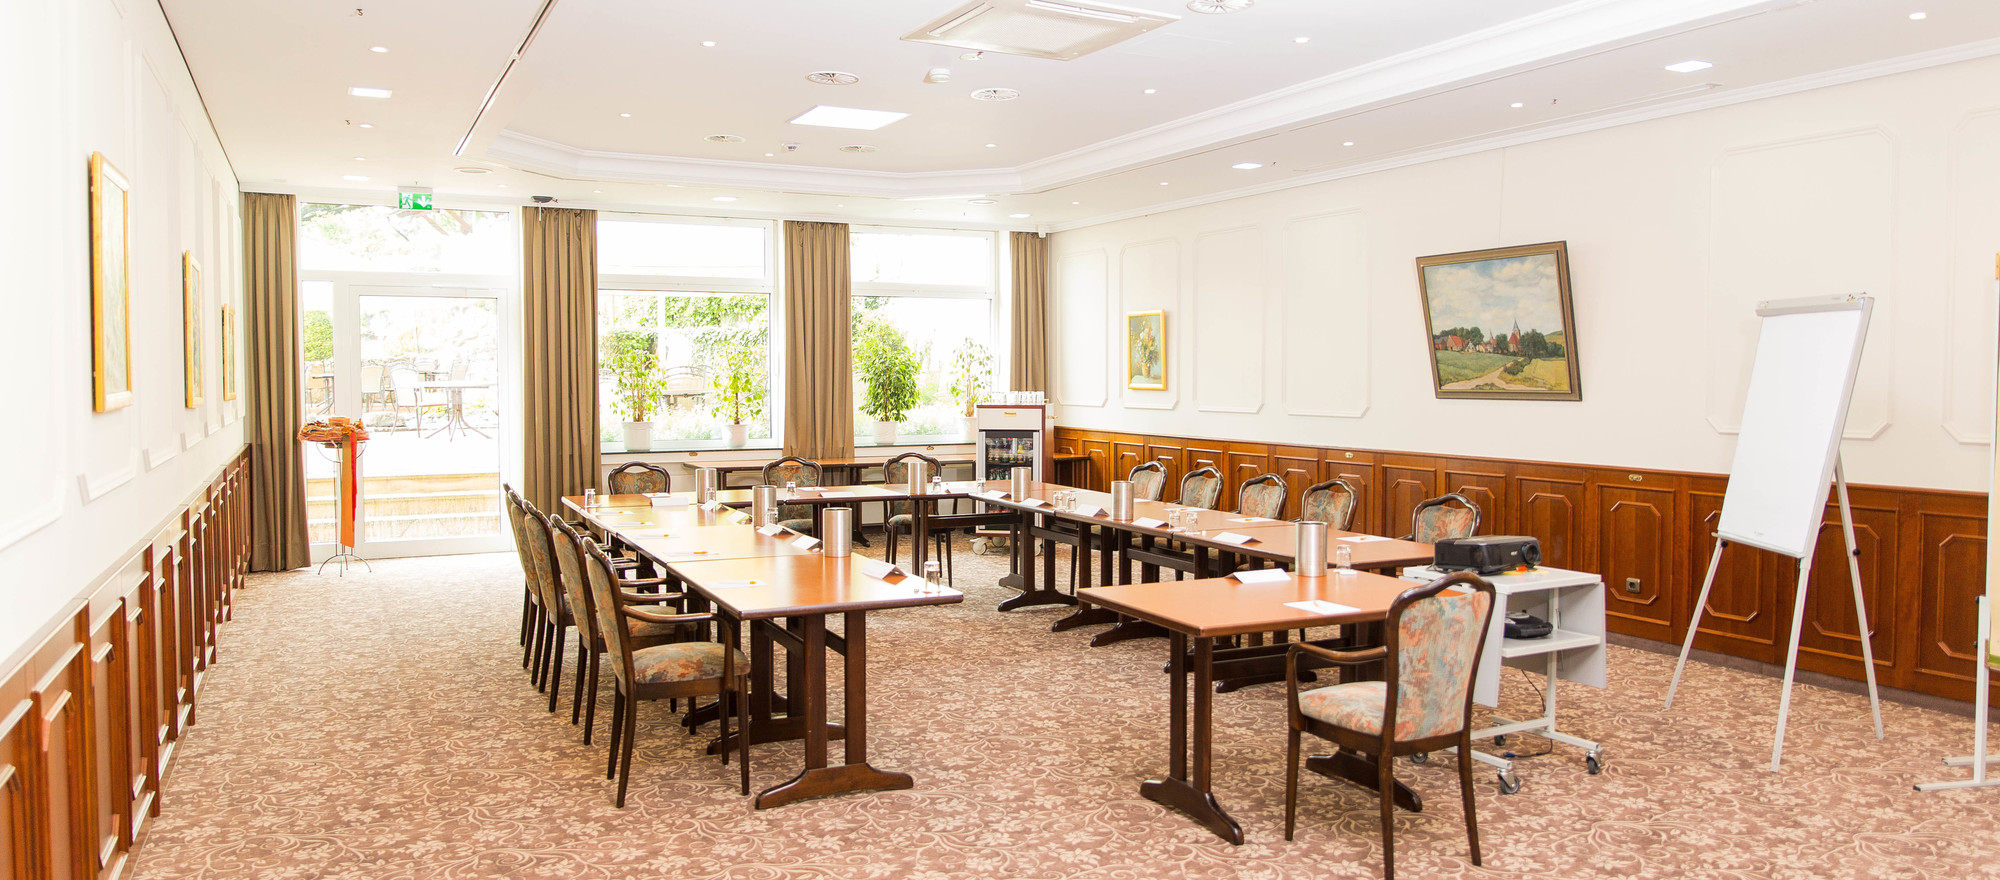 Large seminar room for every occaison in the 4-star-superior hotel Ringhotel Teutoburger Wald in Tecklenburg